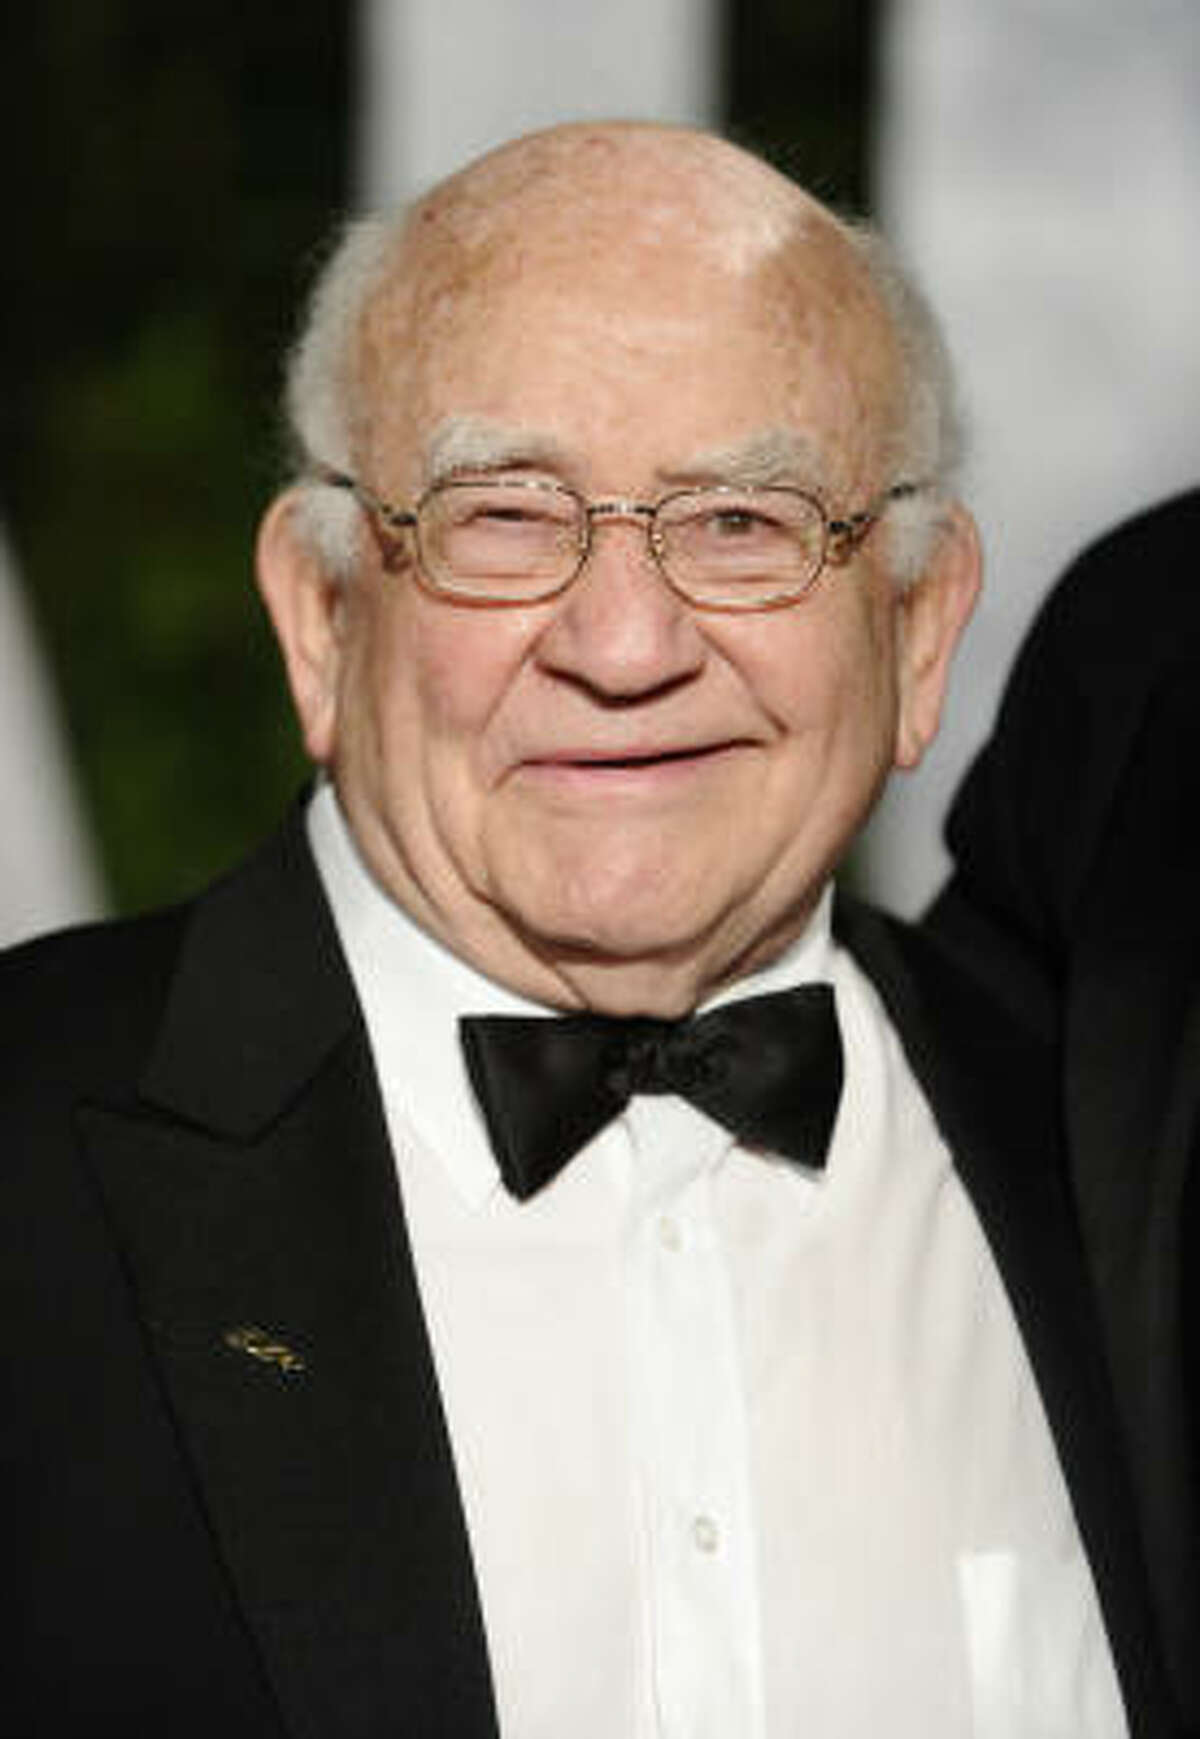 Early years Yitzhak Edward Asner was born on Nov. 15, 1929 in Kansas City, Mo., to Orthodox Jewish immigrants from Russia. He attended the University of Chicago and joined a precursor to the Second City comedy group. He's an Army vet.